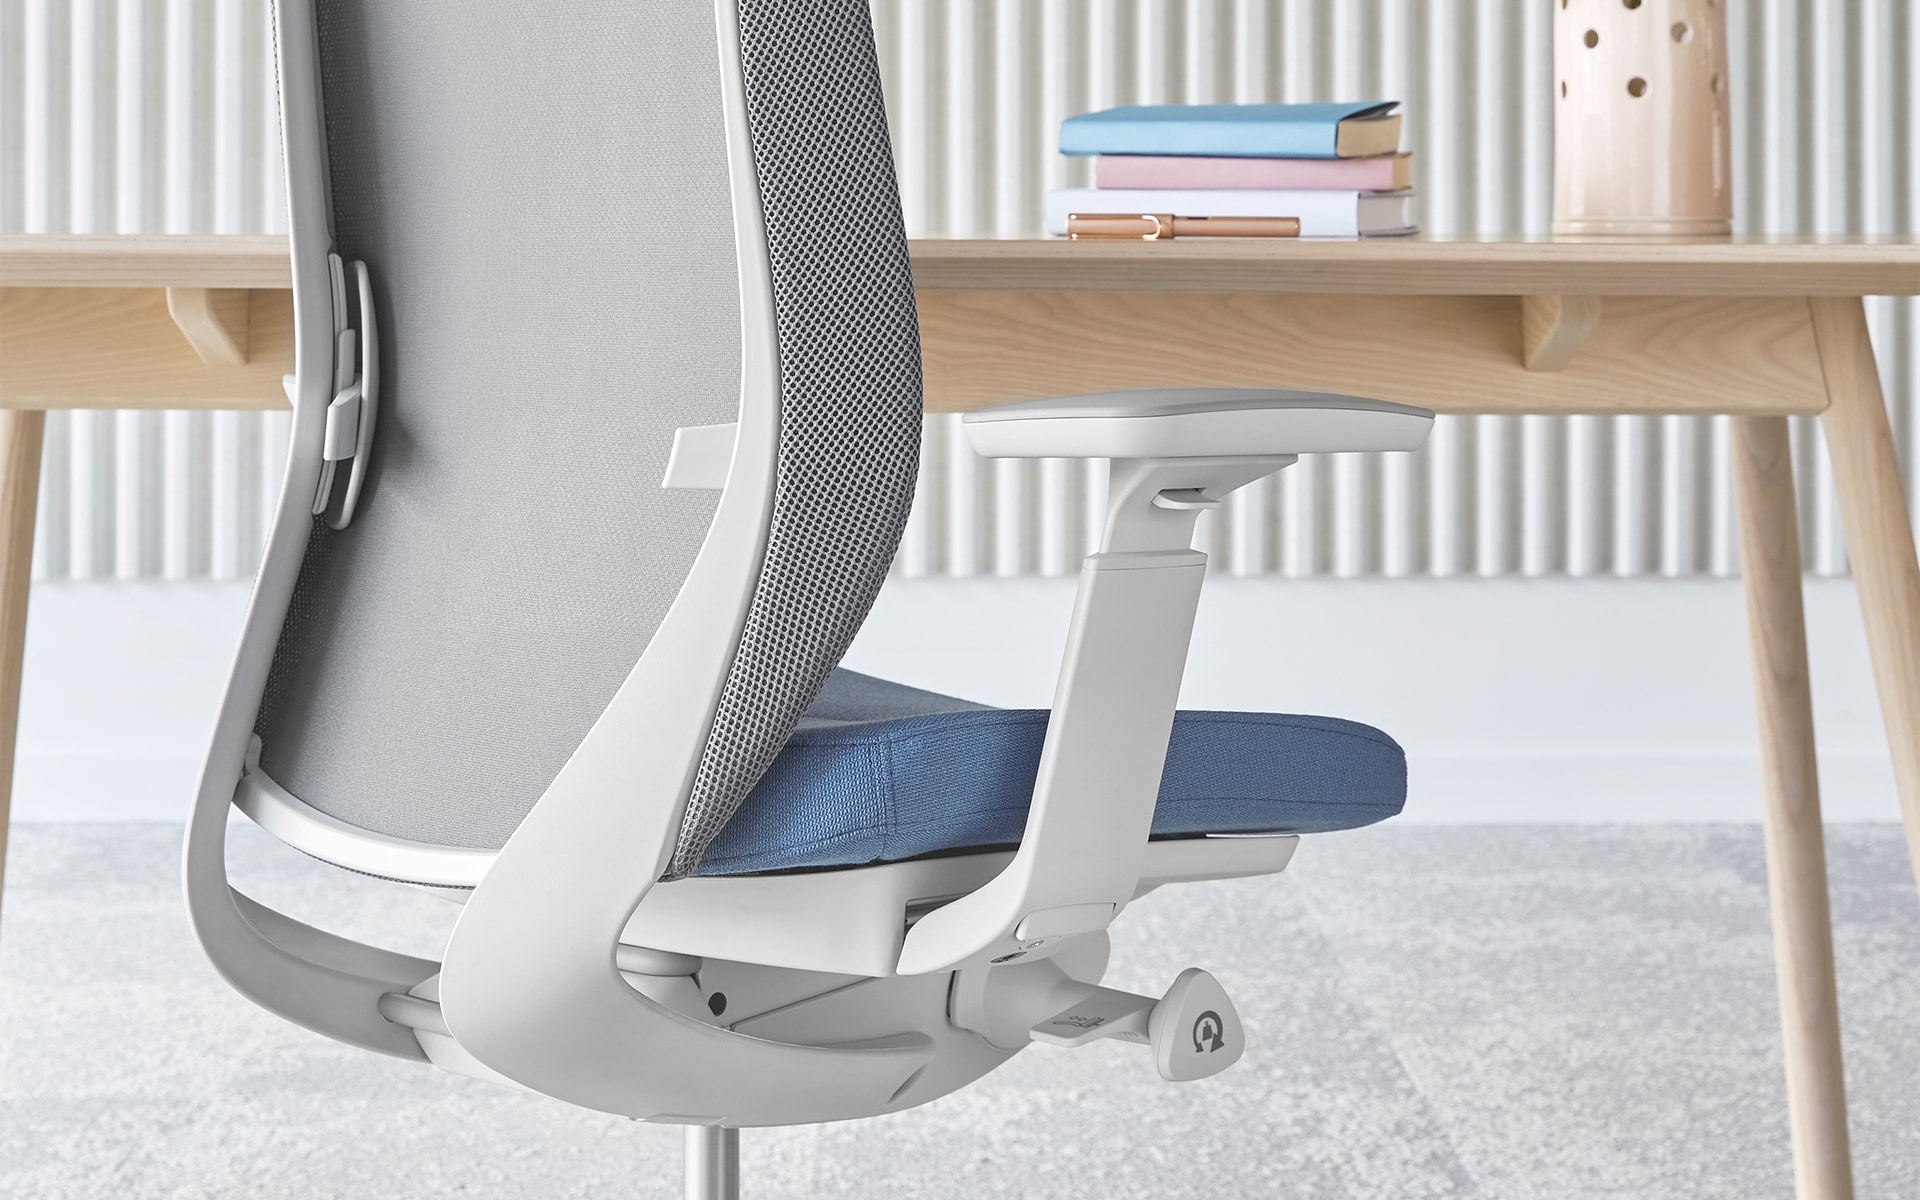 The Profim Accis Pro office chair by ITO Design in white with light blue upholstery at minimalist desk